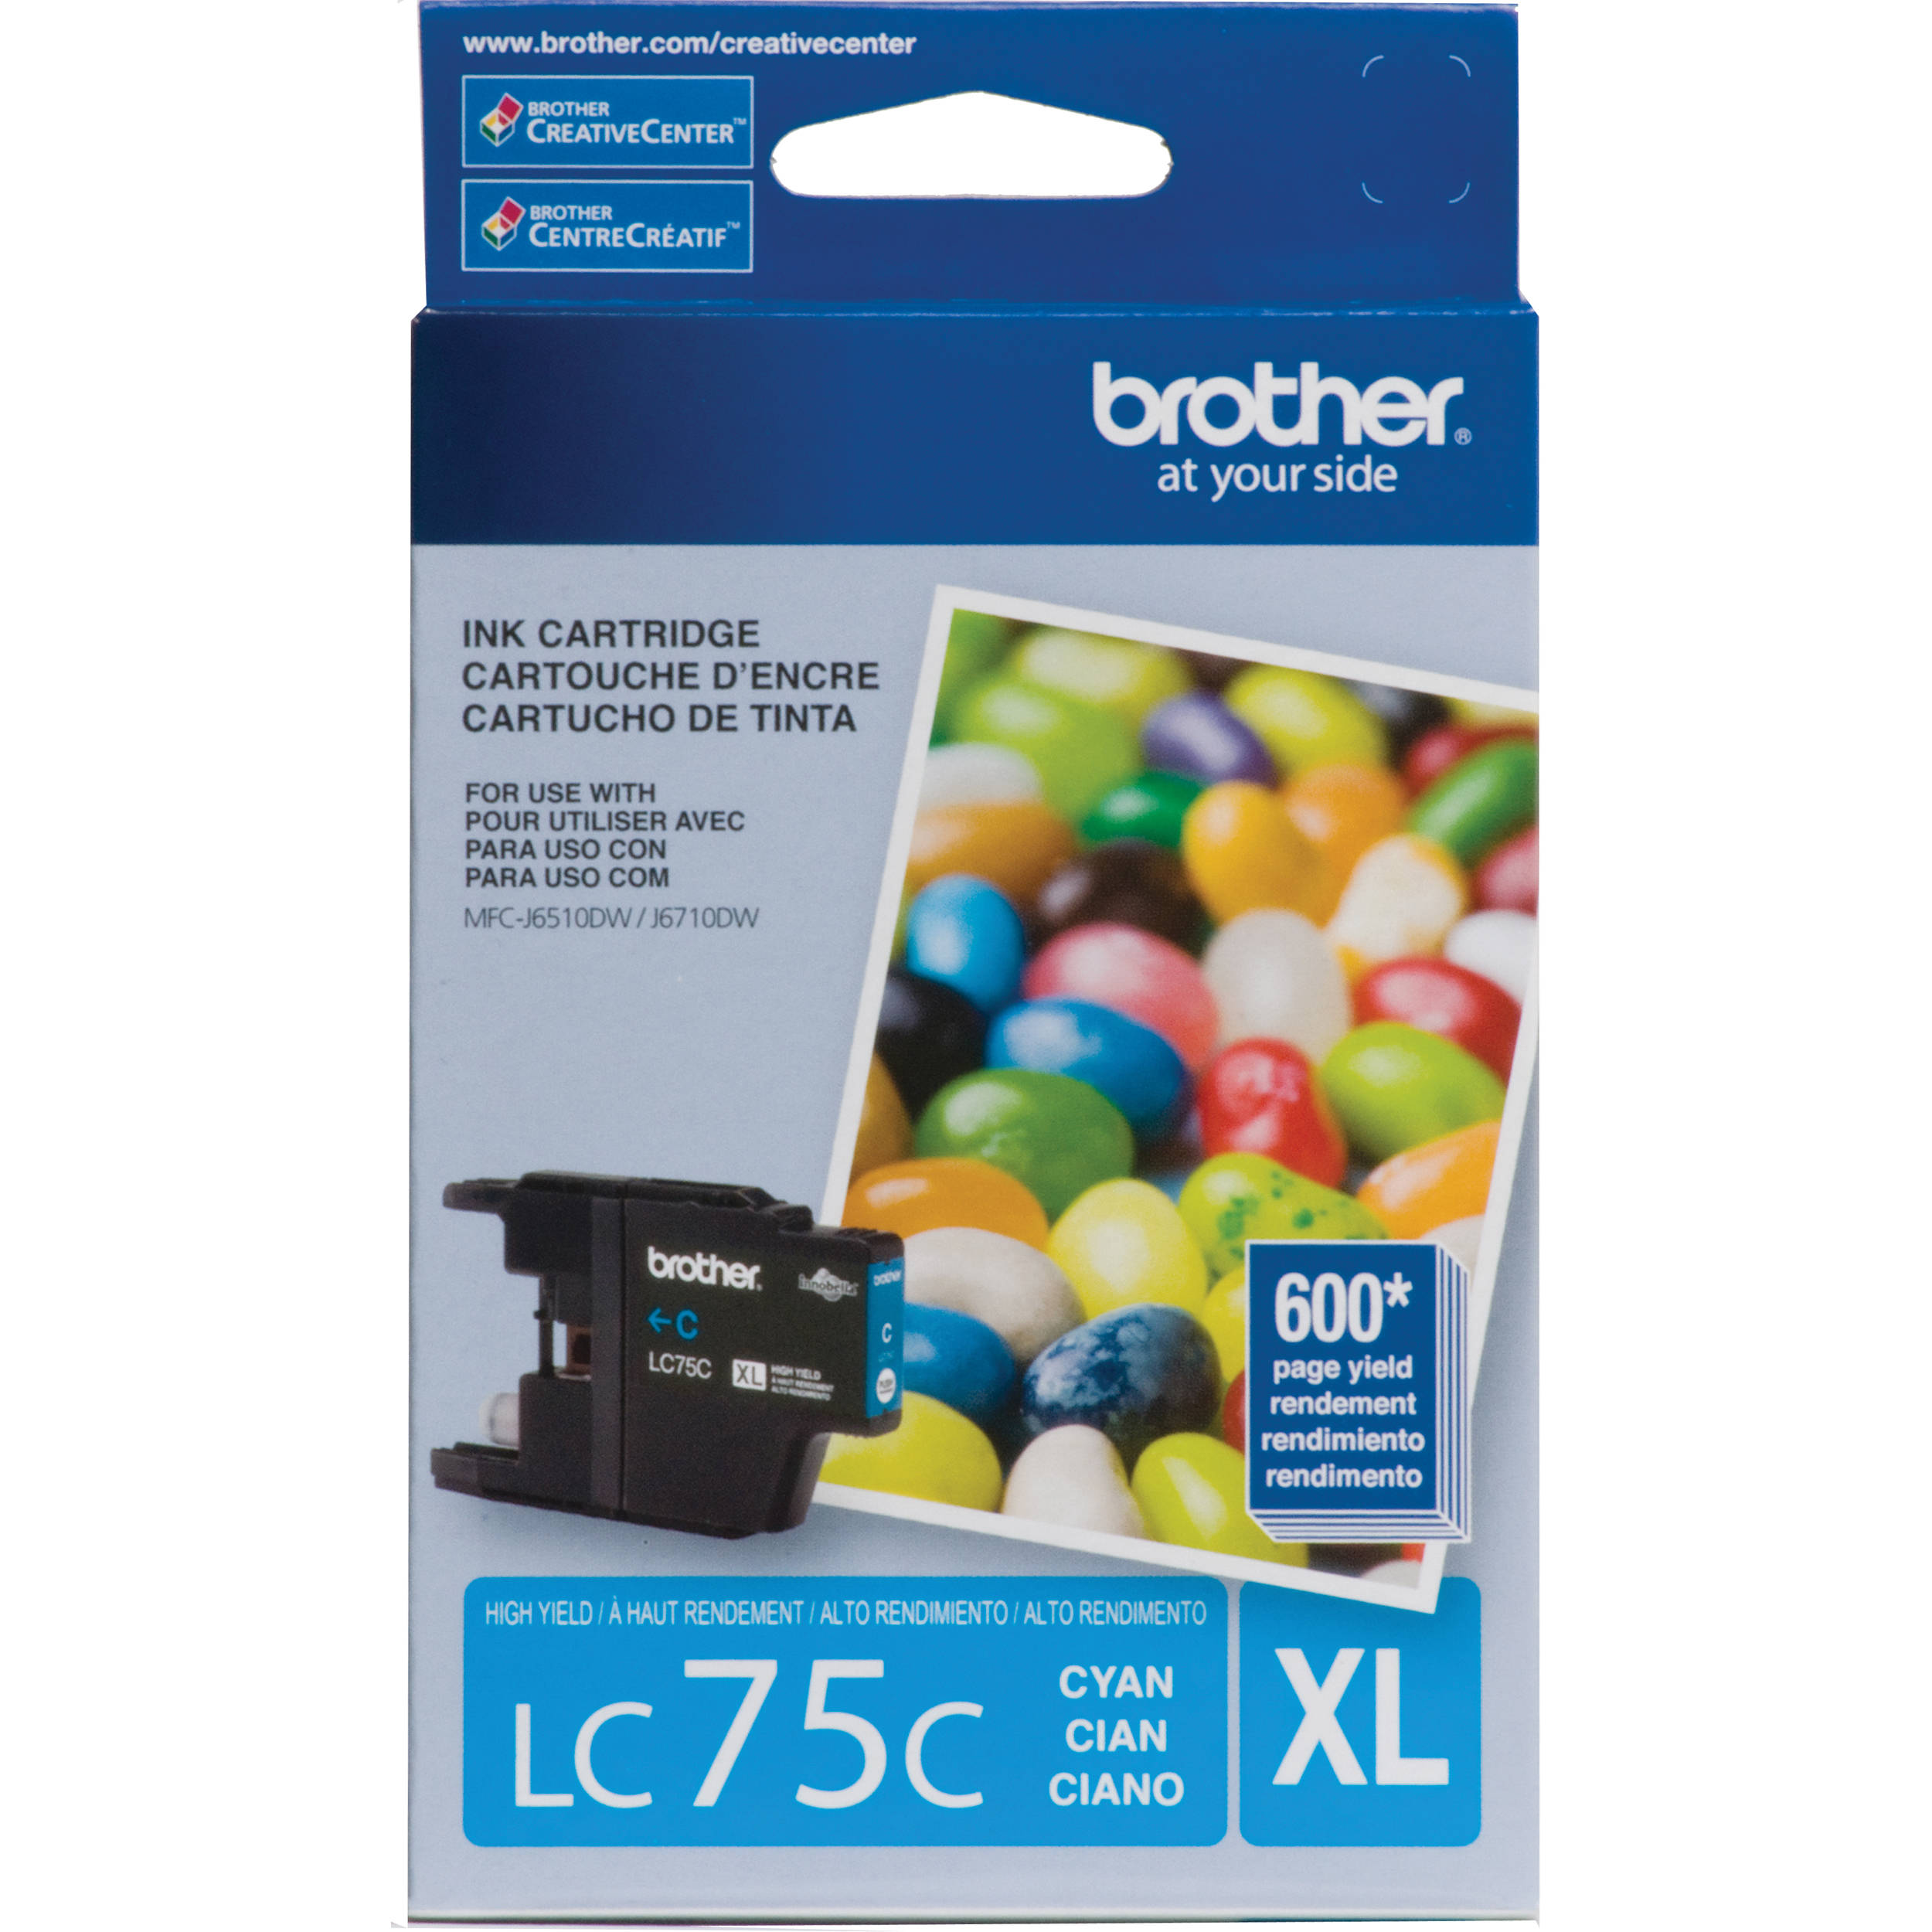 Brother B-LC75C (Single Cartridge)